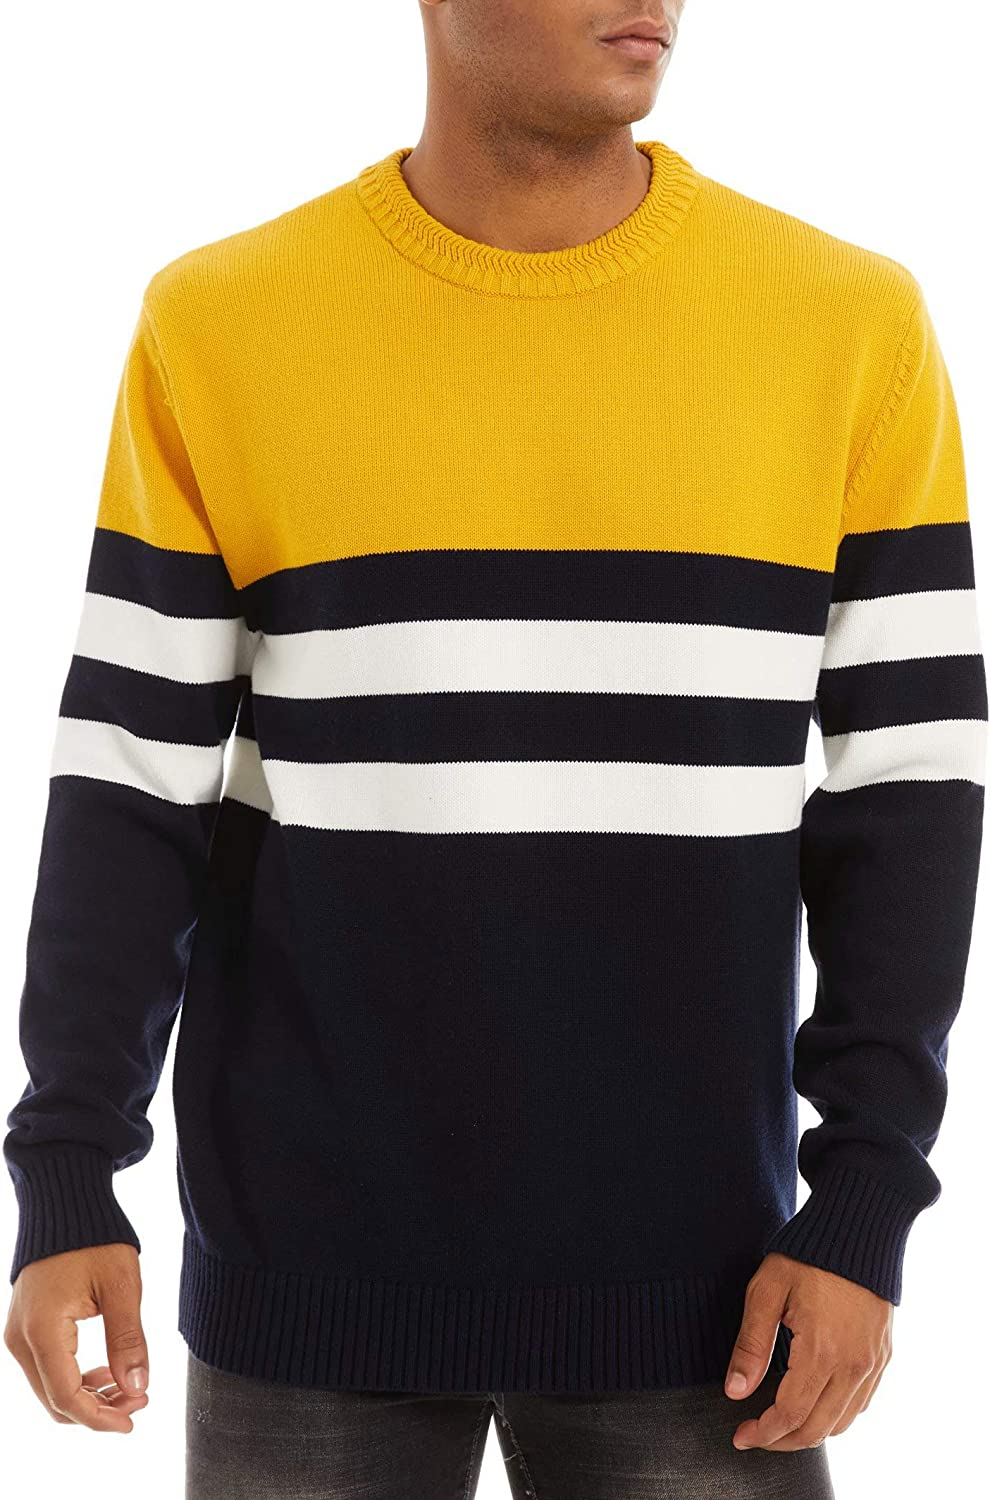 MAGCOMSEN Limited price Men's Crewneck Sweater Soft Cash special price Thermal Sweatshirt Knitted